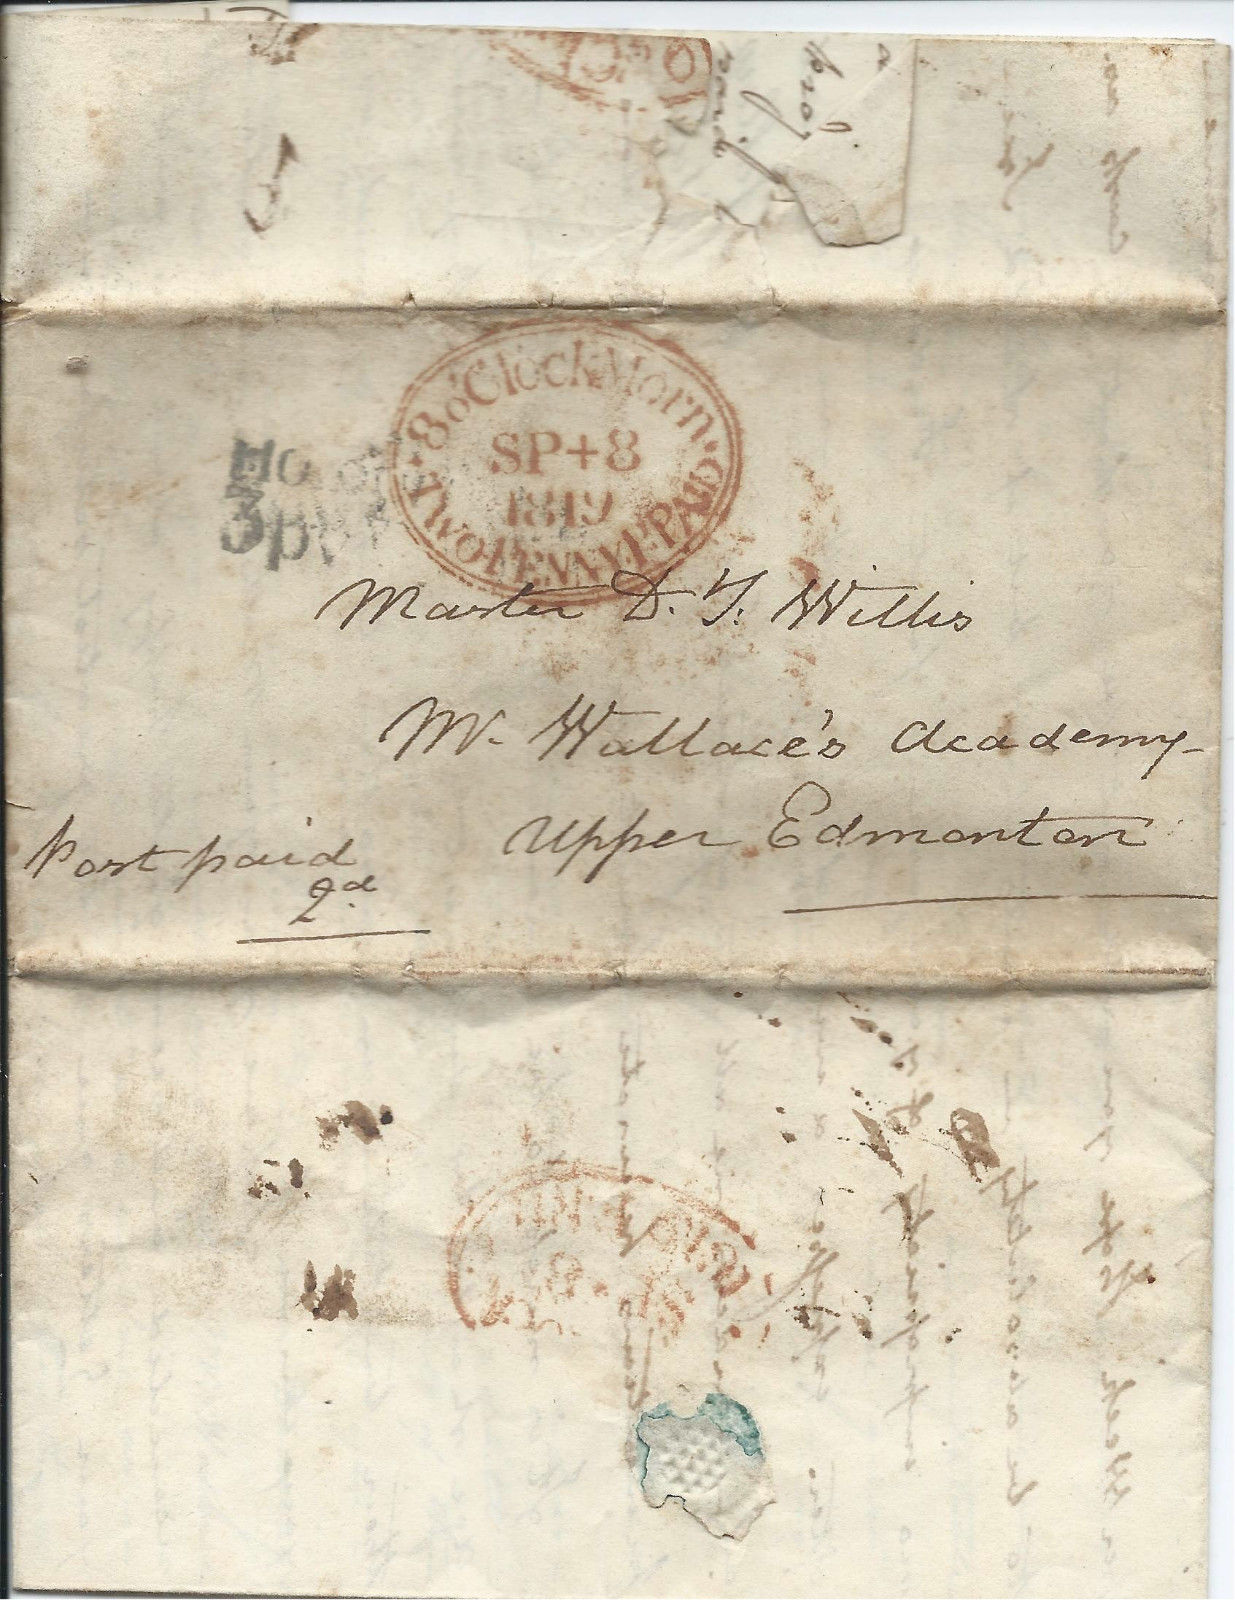 Address of the letter